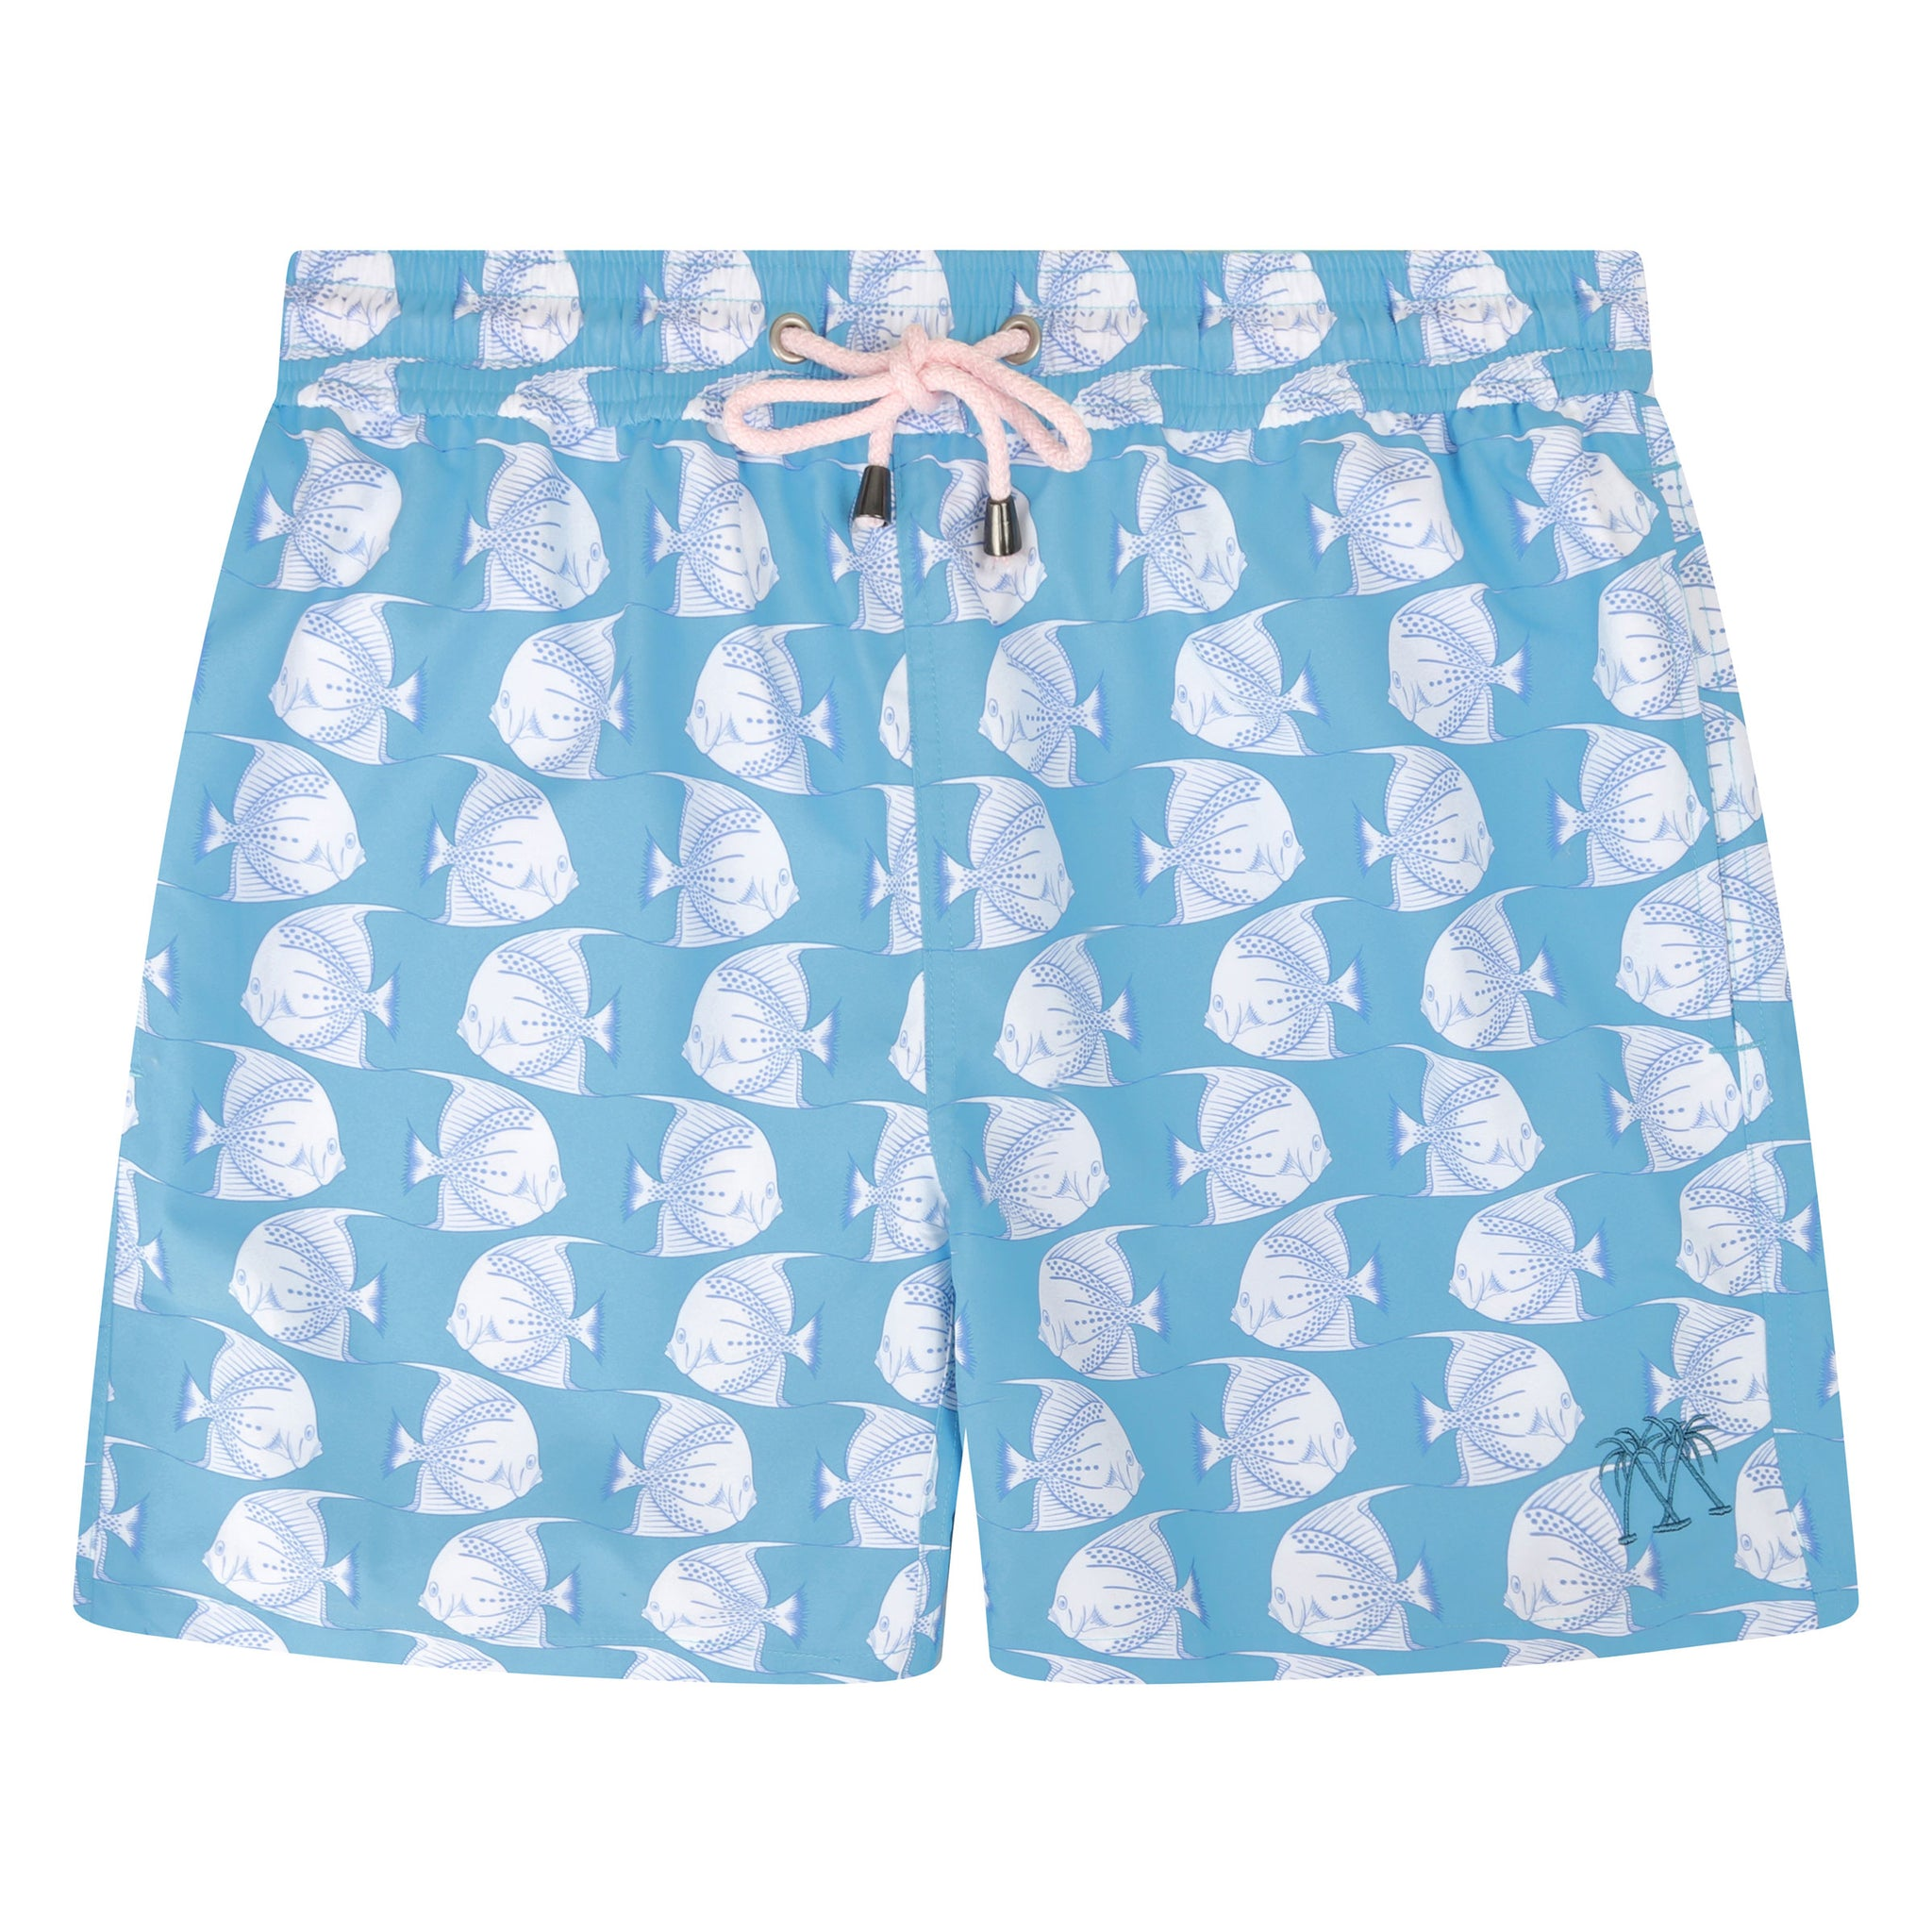 d9ae915481c4d Mens swim trunks : FISH - TURQUOISE designer Lotty B for Pink House Mustique